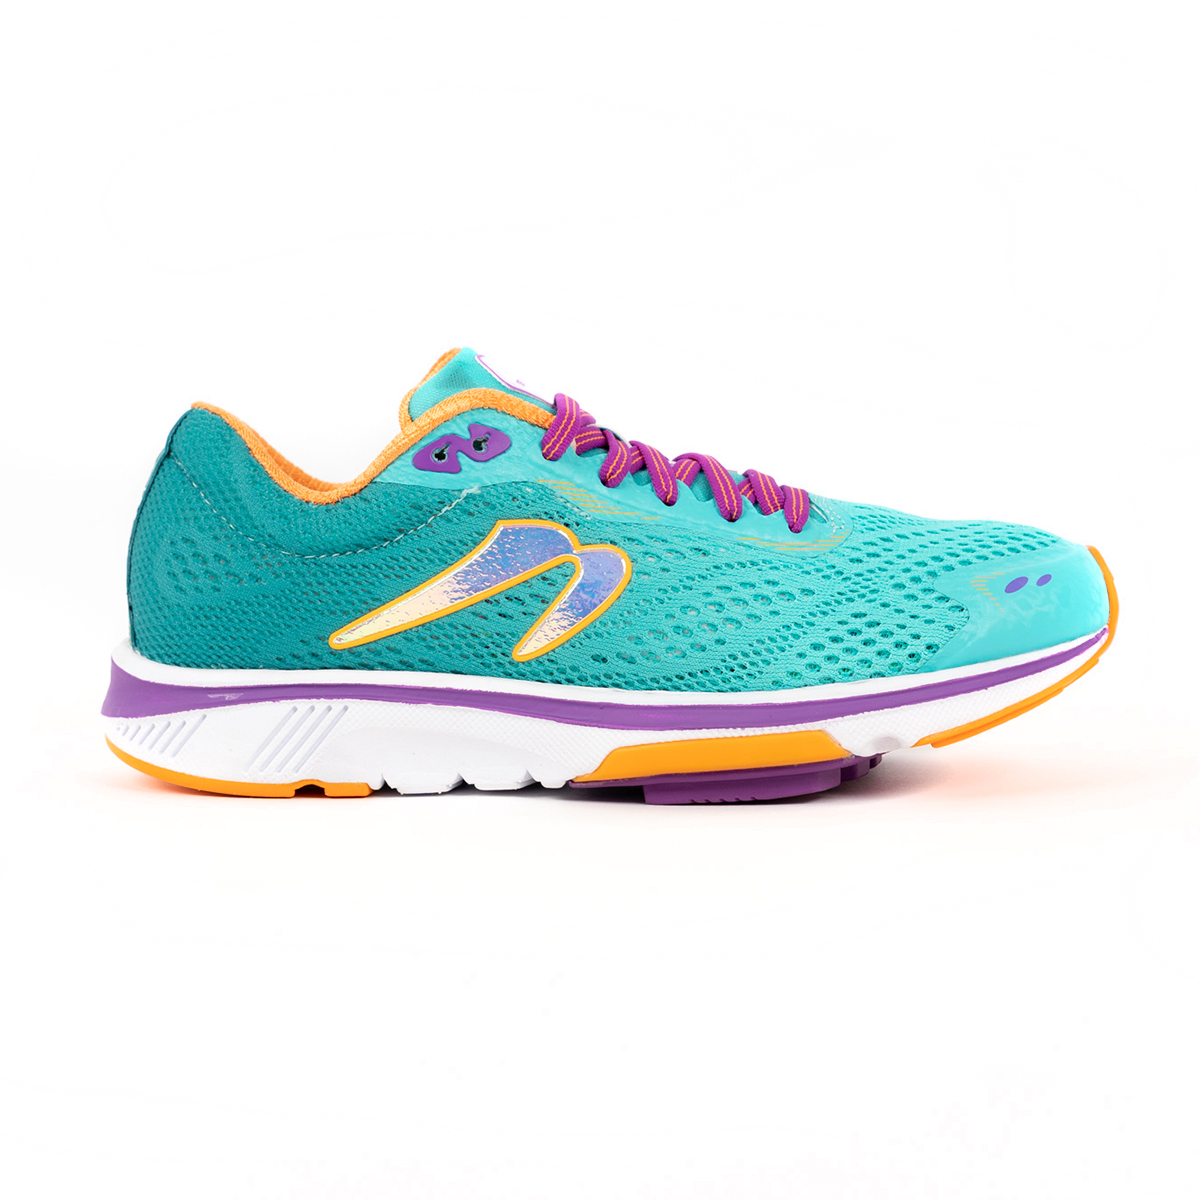 Women's Newton Gravity 9 Running Shoe - Color: Jade/Purple (Regular Width) - Size: 5, Jade/Purple, large, image 1